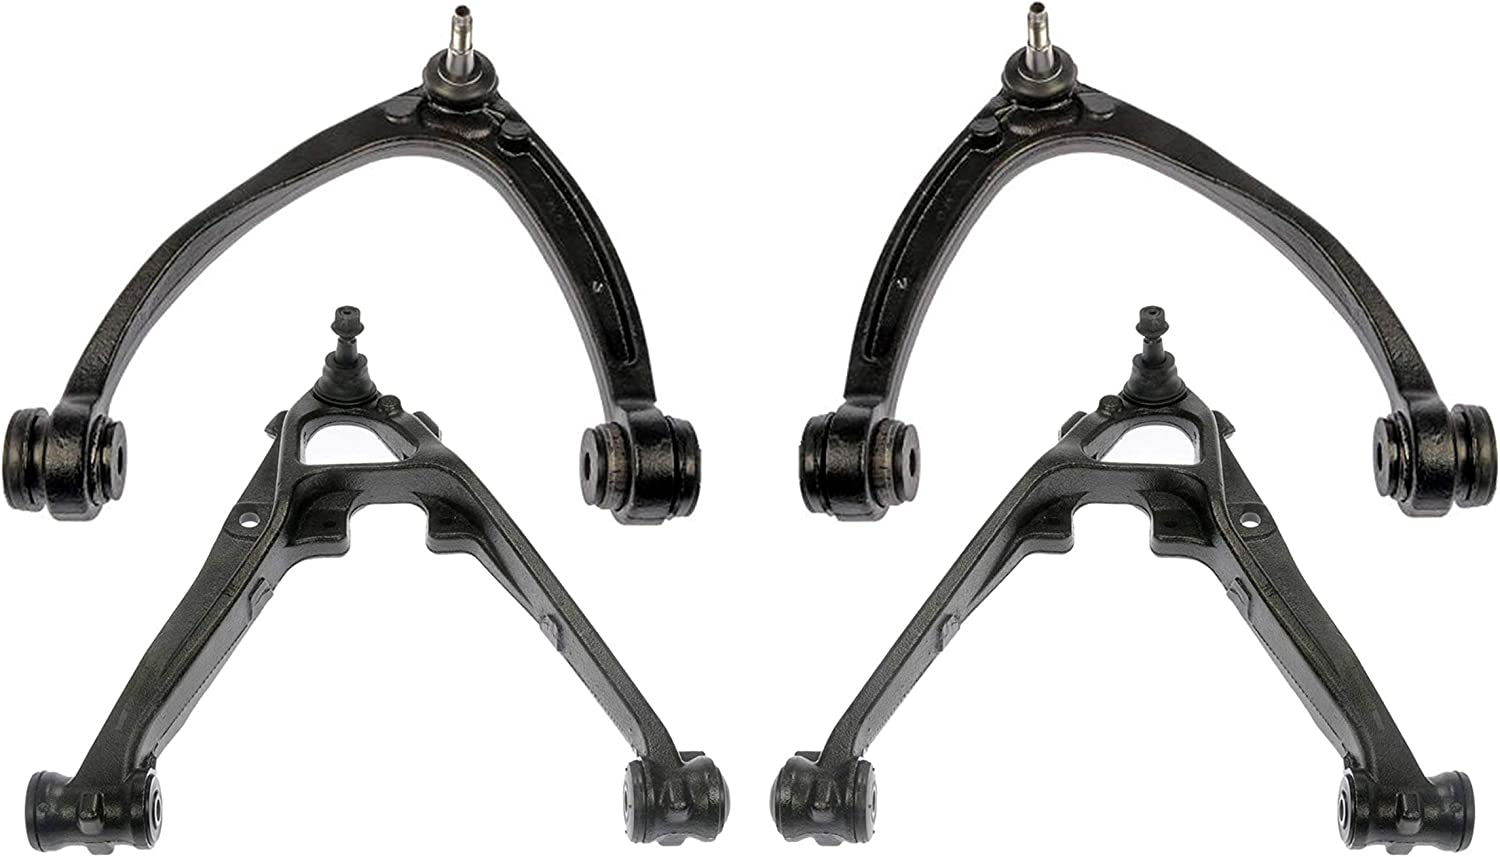 Detroit Axle - GMC Sierra Yukon NOT FOR OFF-ROAD SUSPENSION MODELS Chevy Avalanche Silverado Suburban Tahoe 4pc Front Upper and Cast Iron Lower Control Arms Kit for Cadillac Escalade -